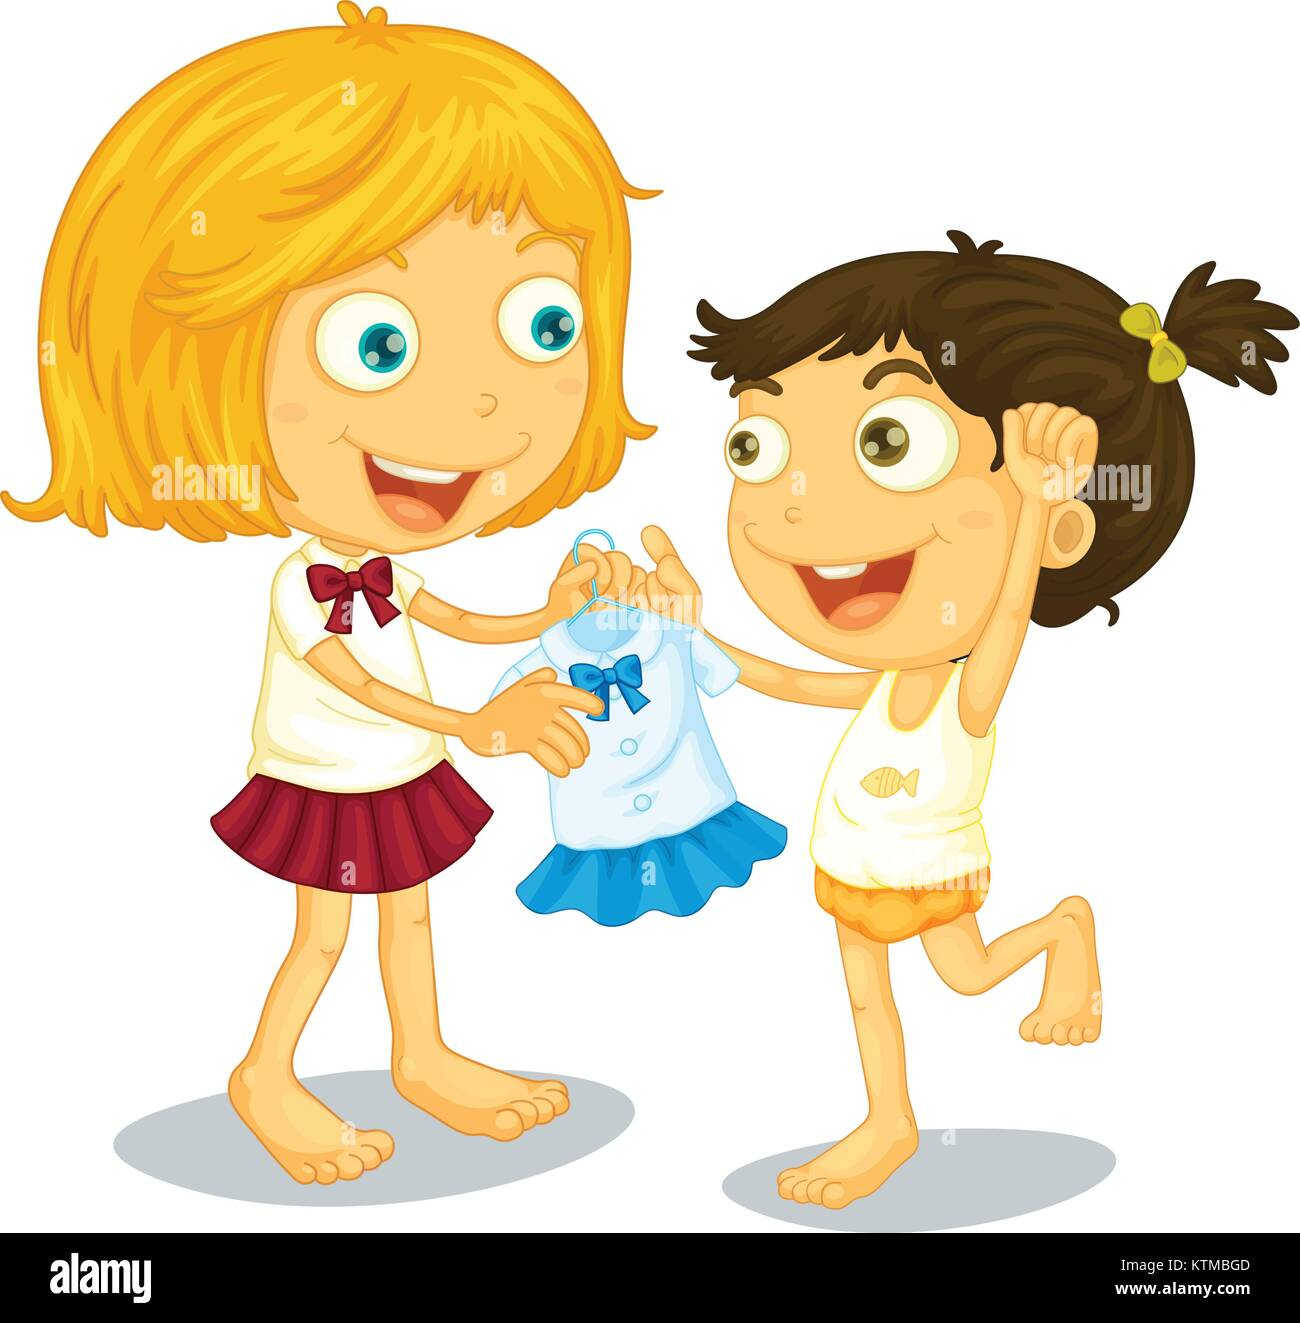 Illustration of sisters getting ready for school - Stock Vector